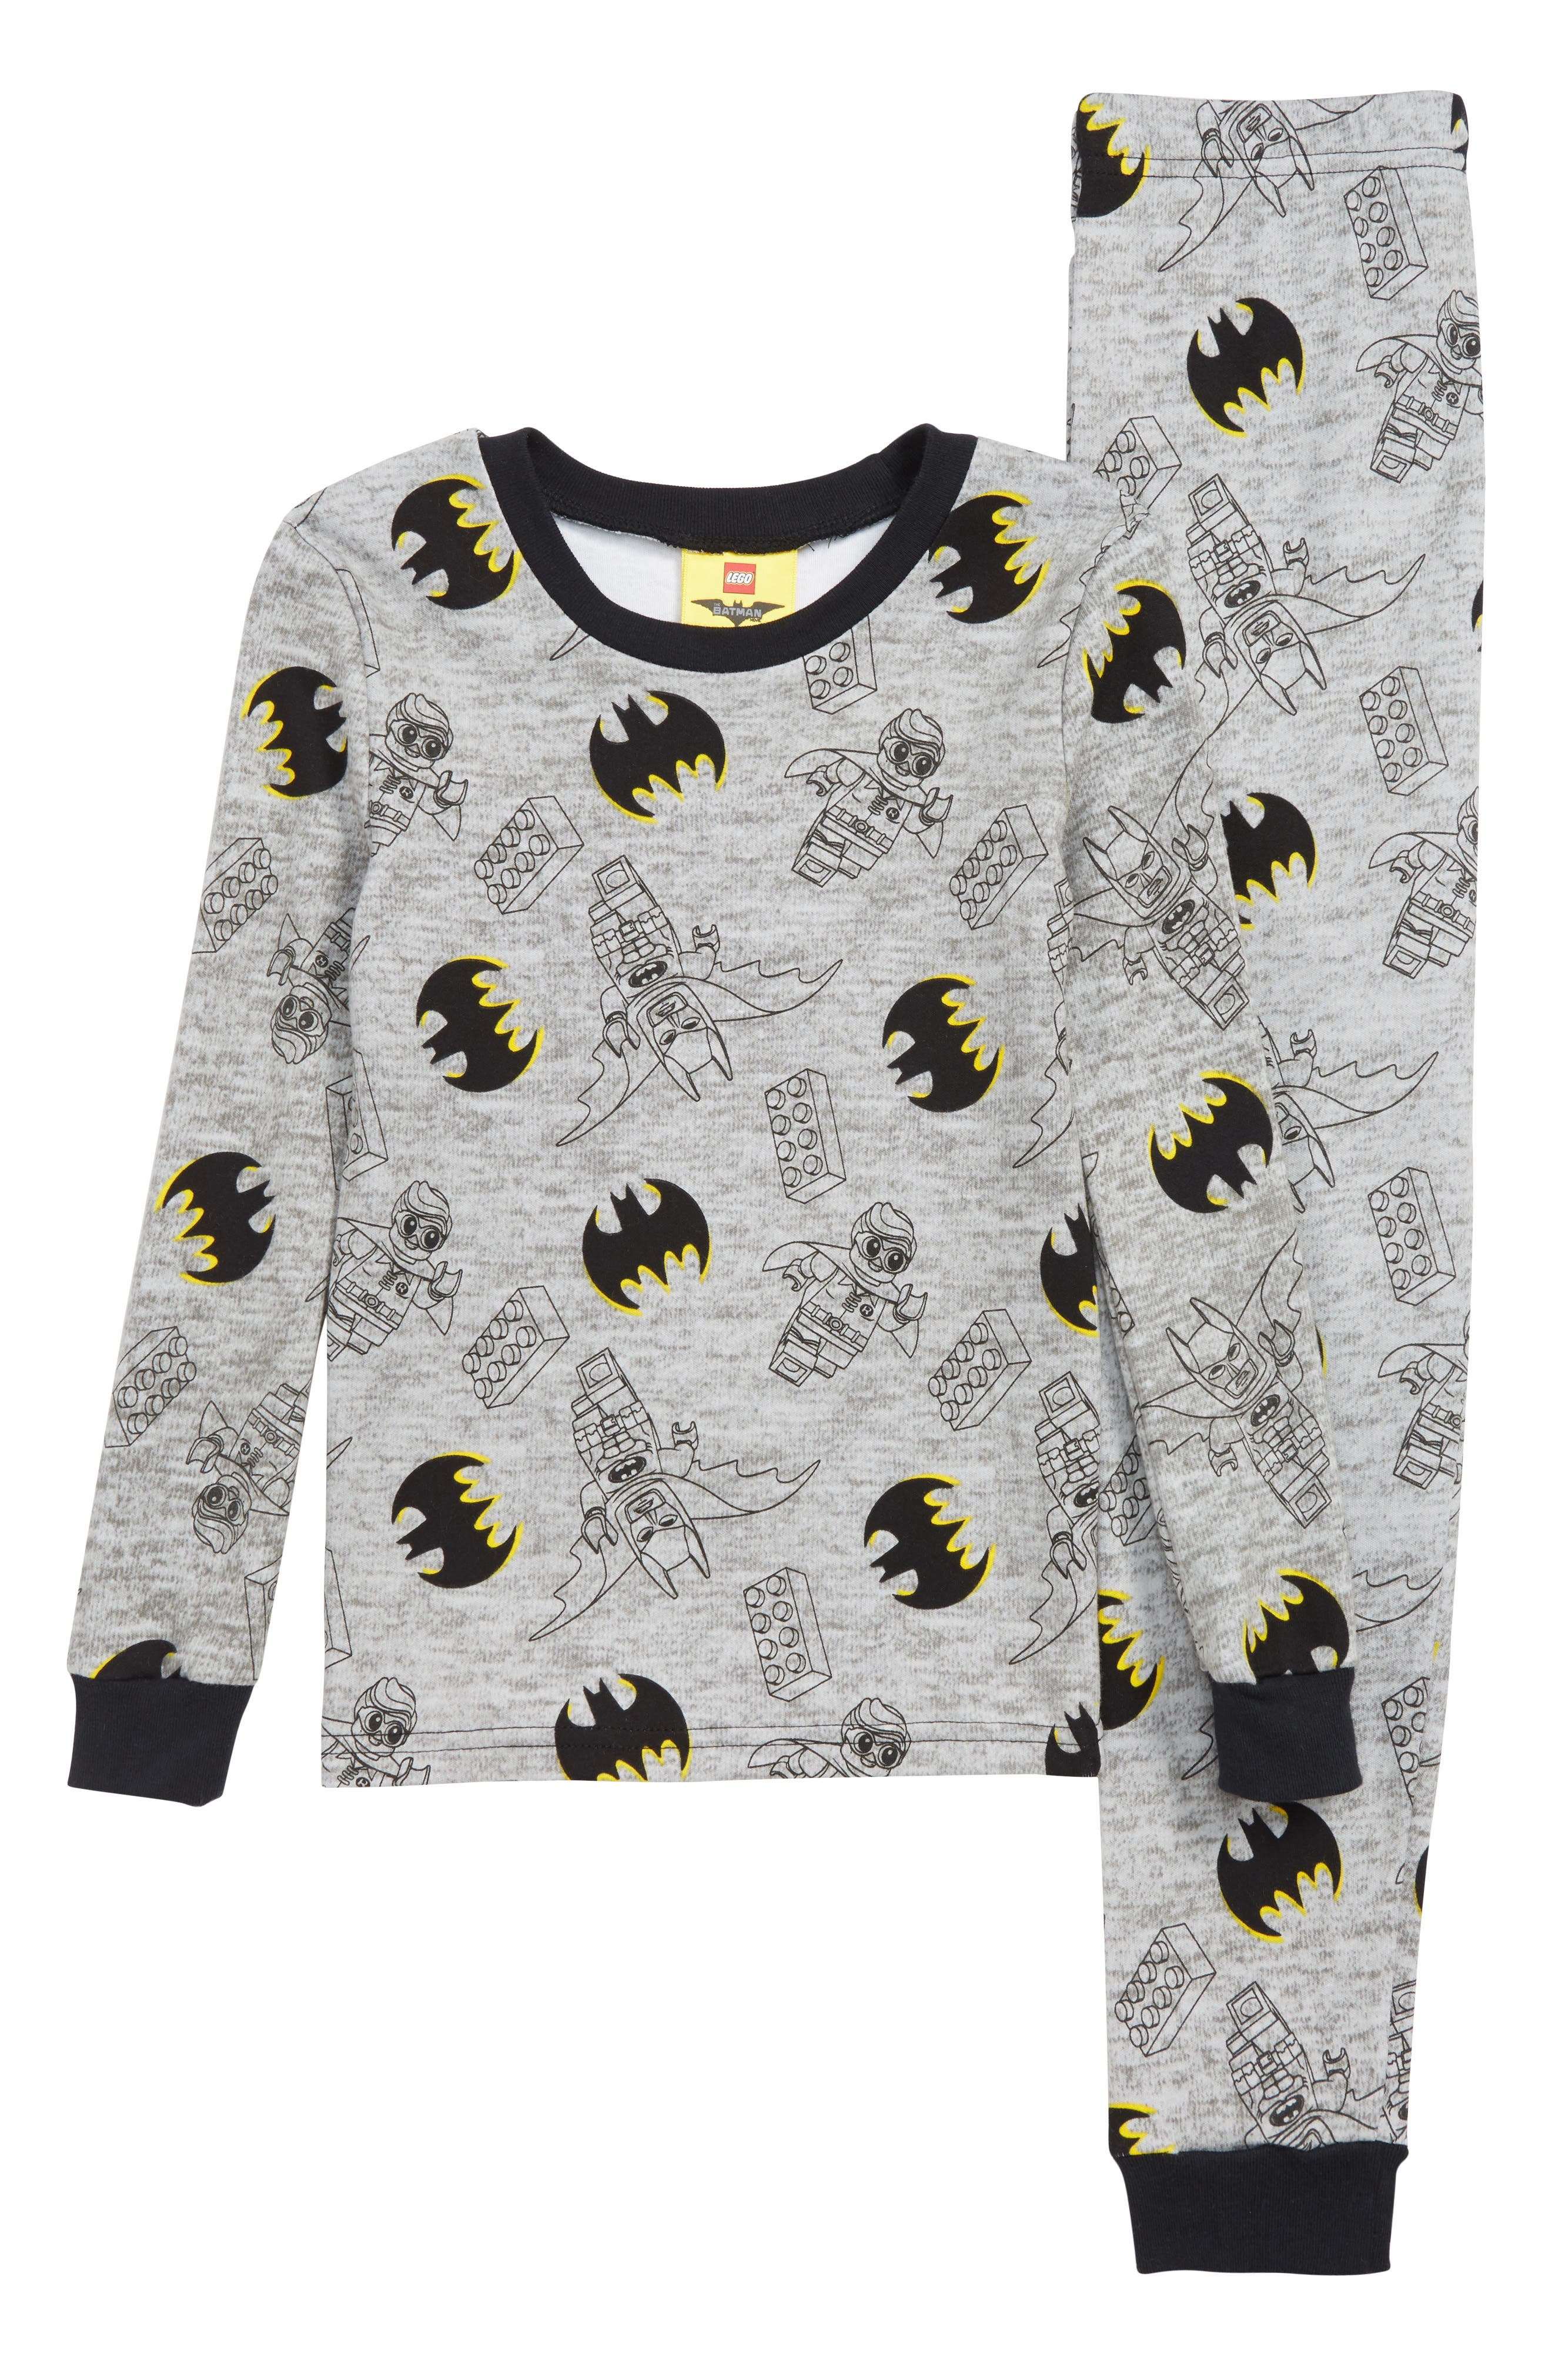 Batman Fitted Two-Piece Pajamas,                         Main,                         color, GRY/ BLK